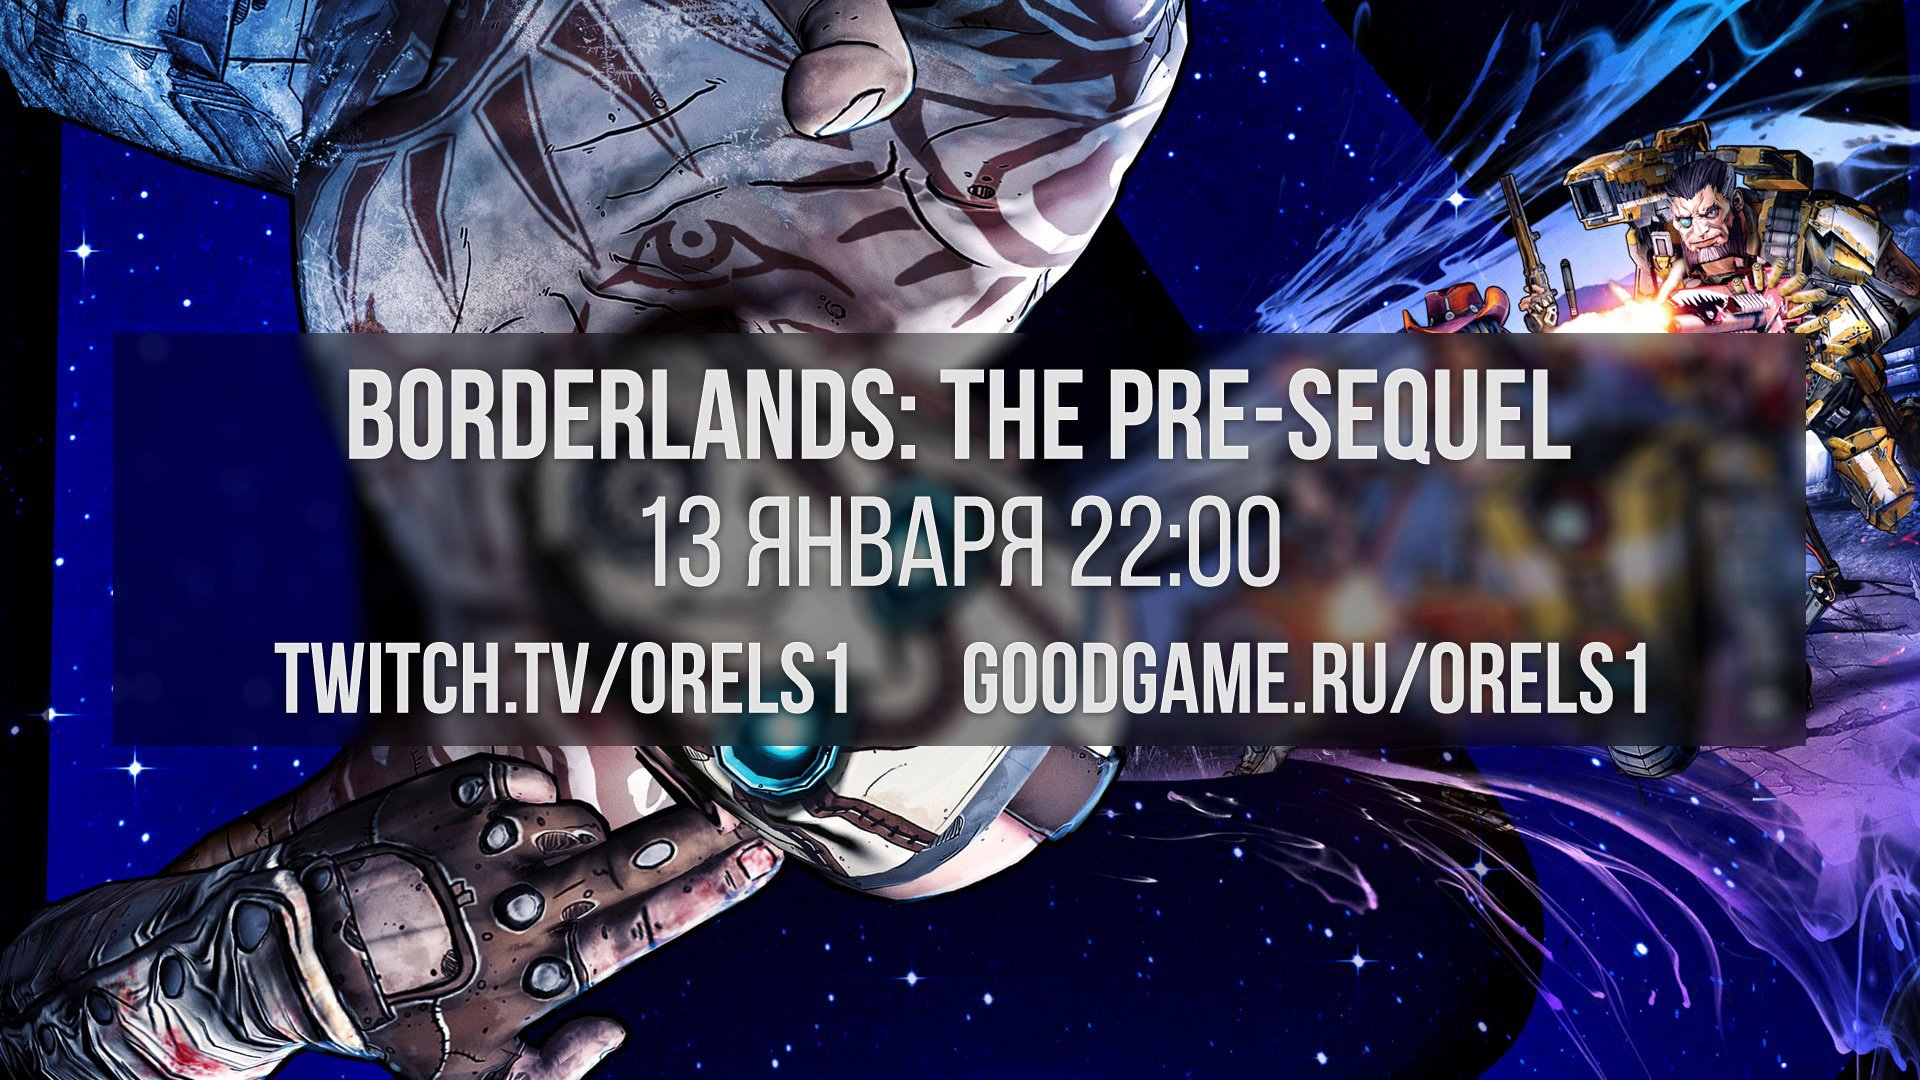 Сегодня 22:00. Borderlands: The Pre-Sequel с Ggengarrr - Изображение 1